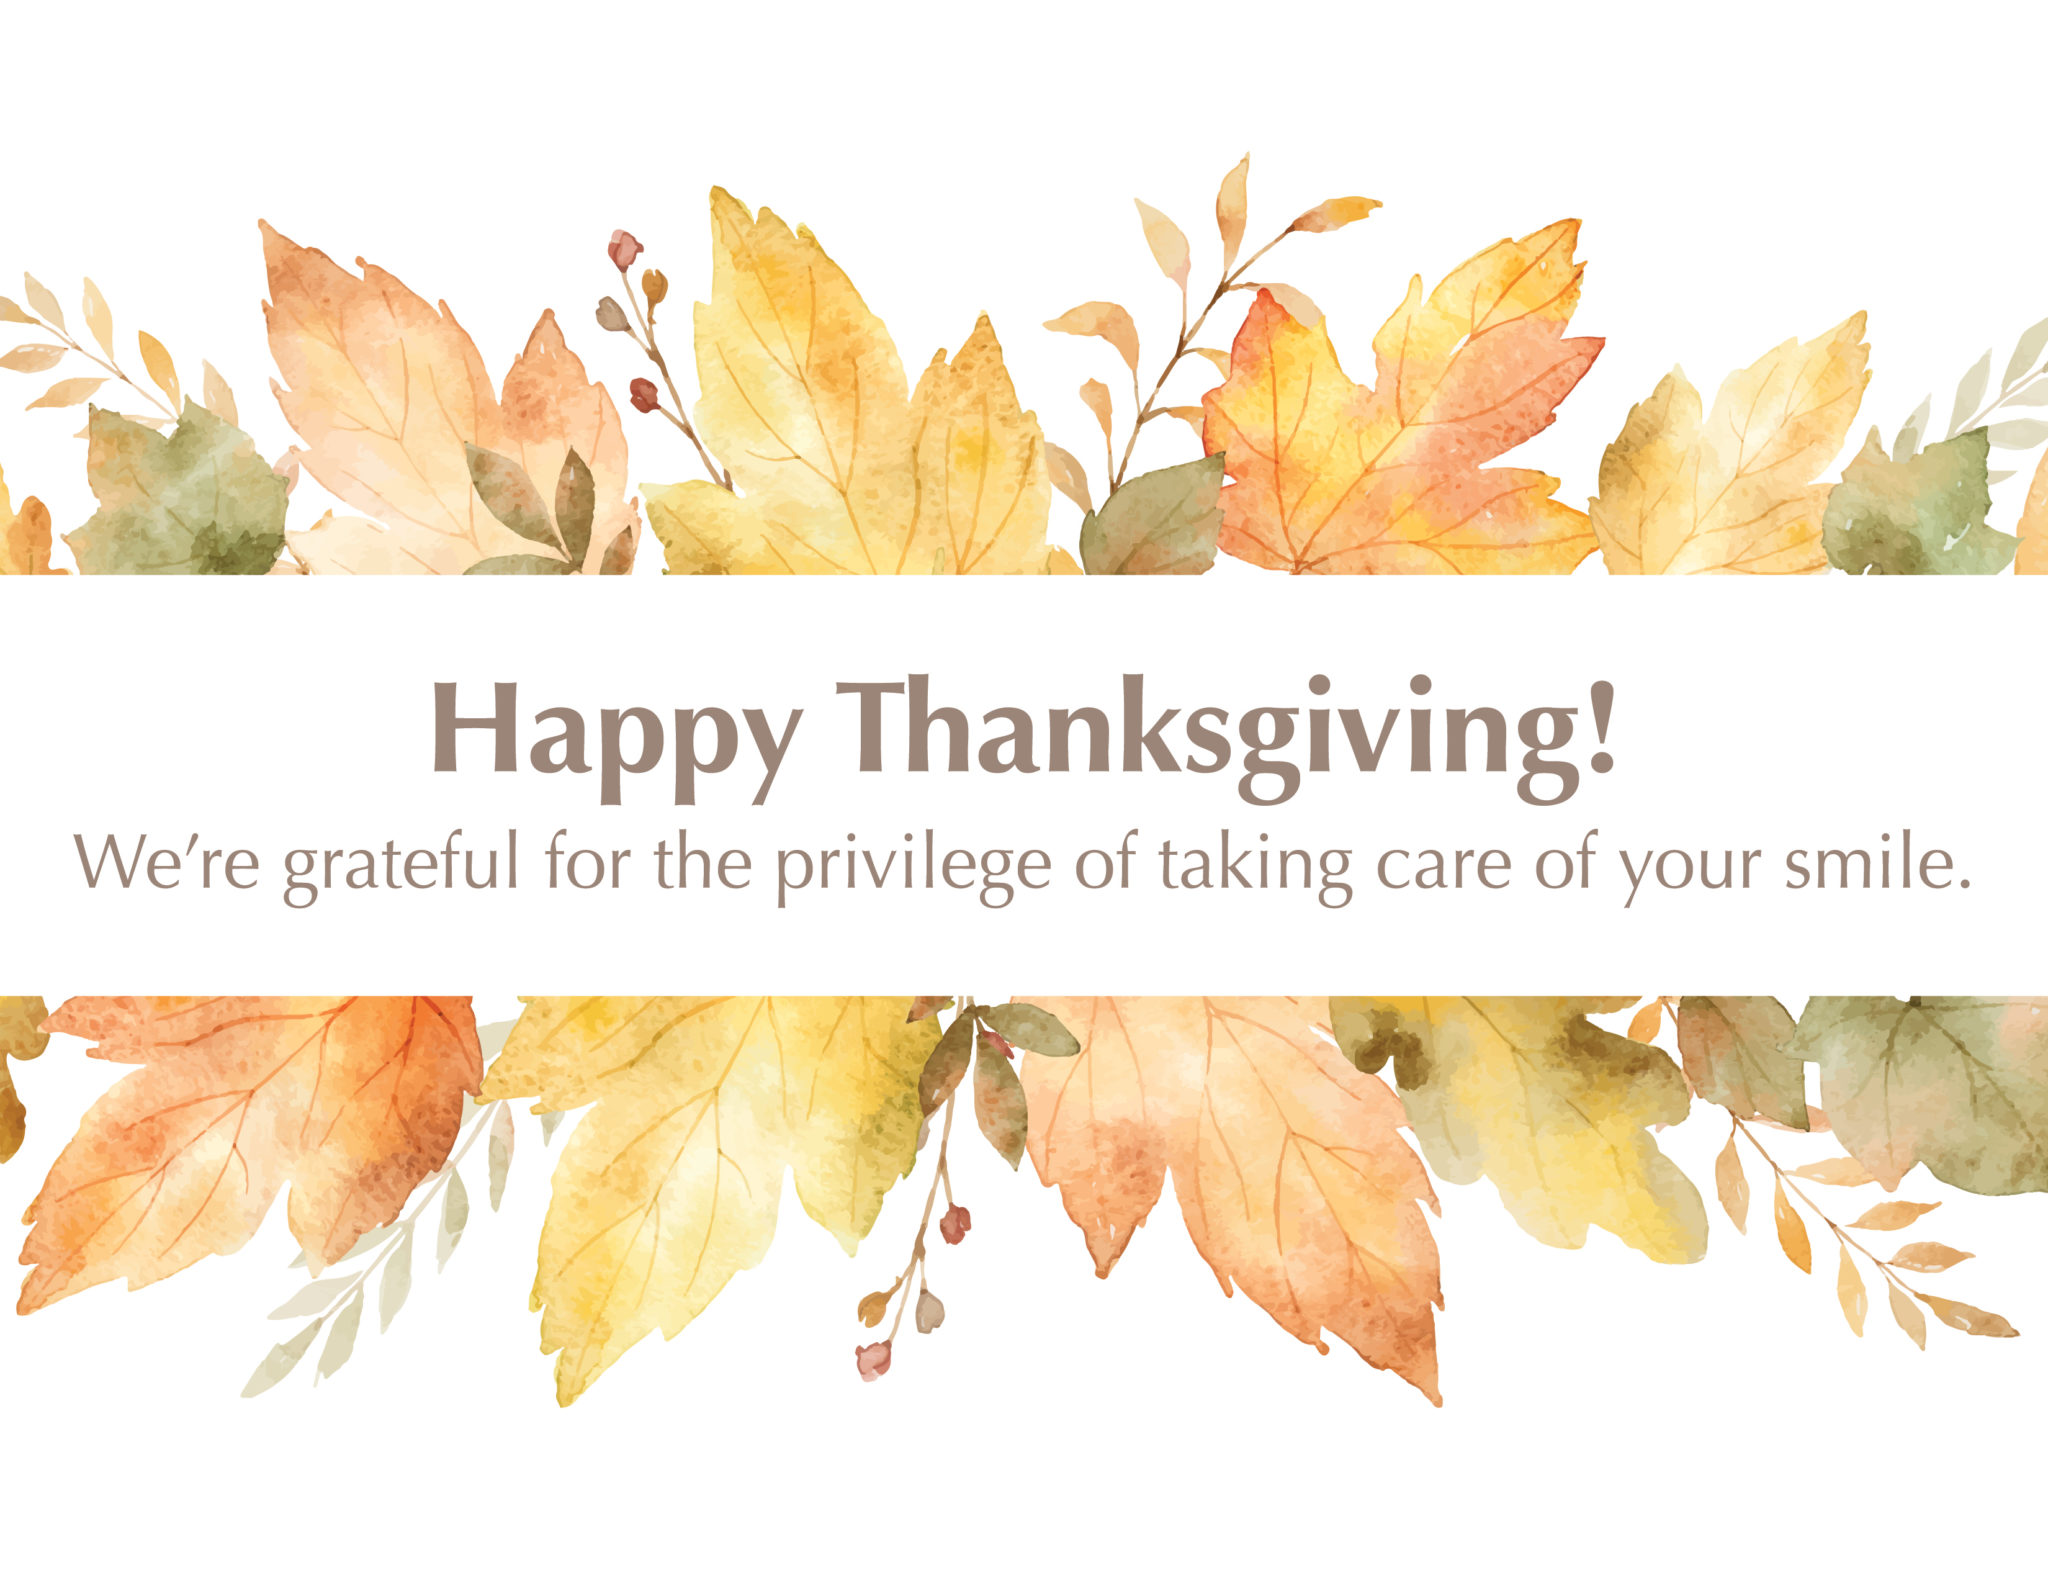 Thanksgiving ideas for your dental practice practice cafe weve put together 12 thanksgiving poster designs letter size 85 x 11 just for you click on the images above to download these free printables kristyandbryce Gallery